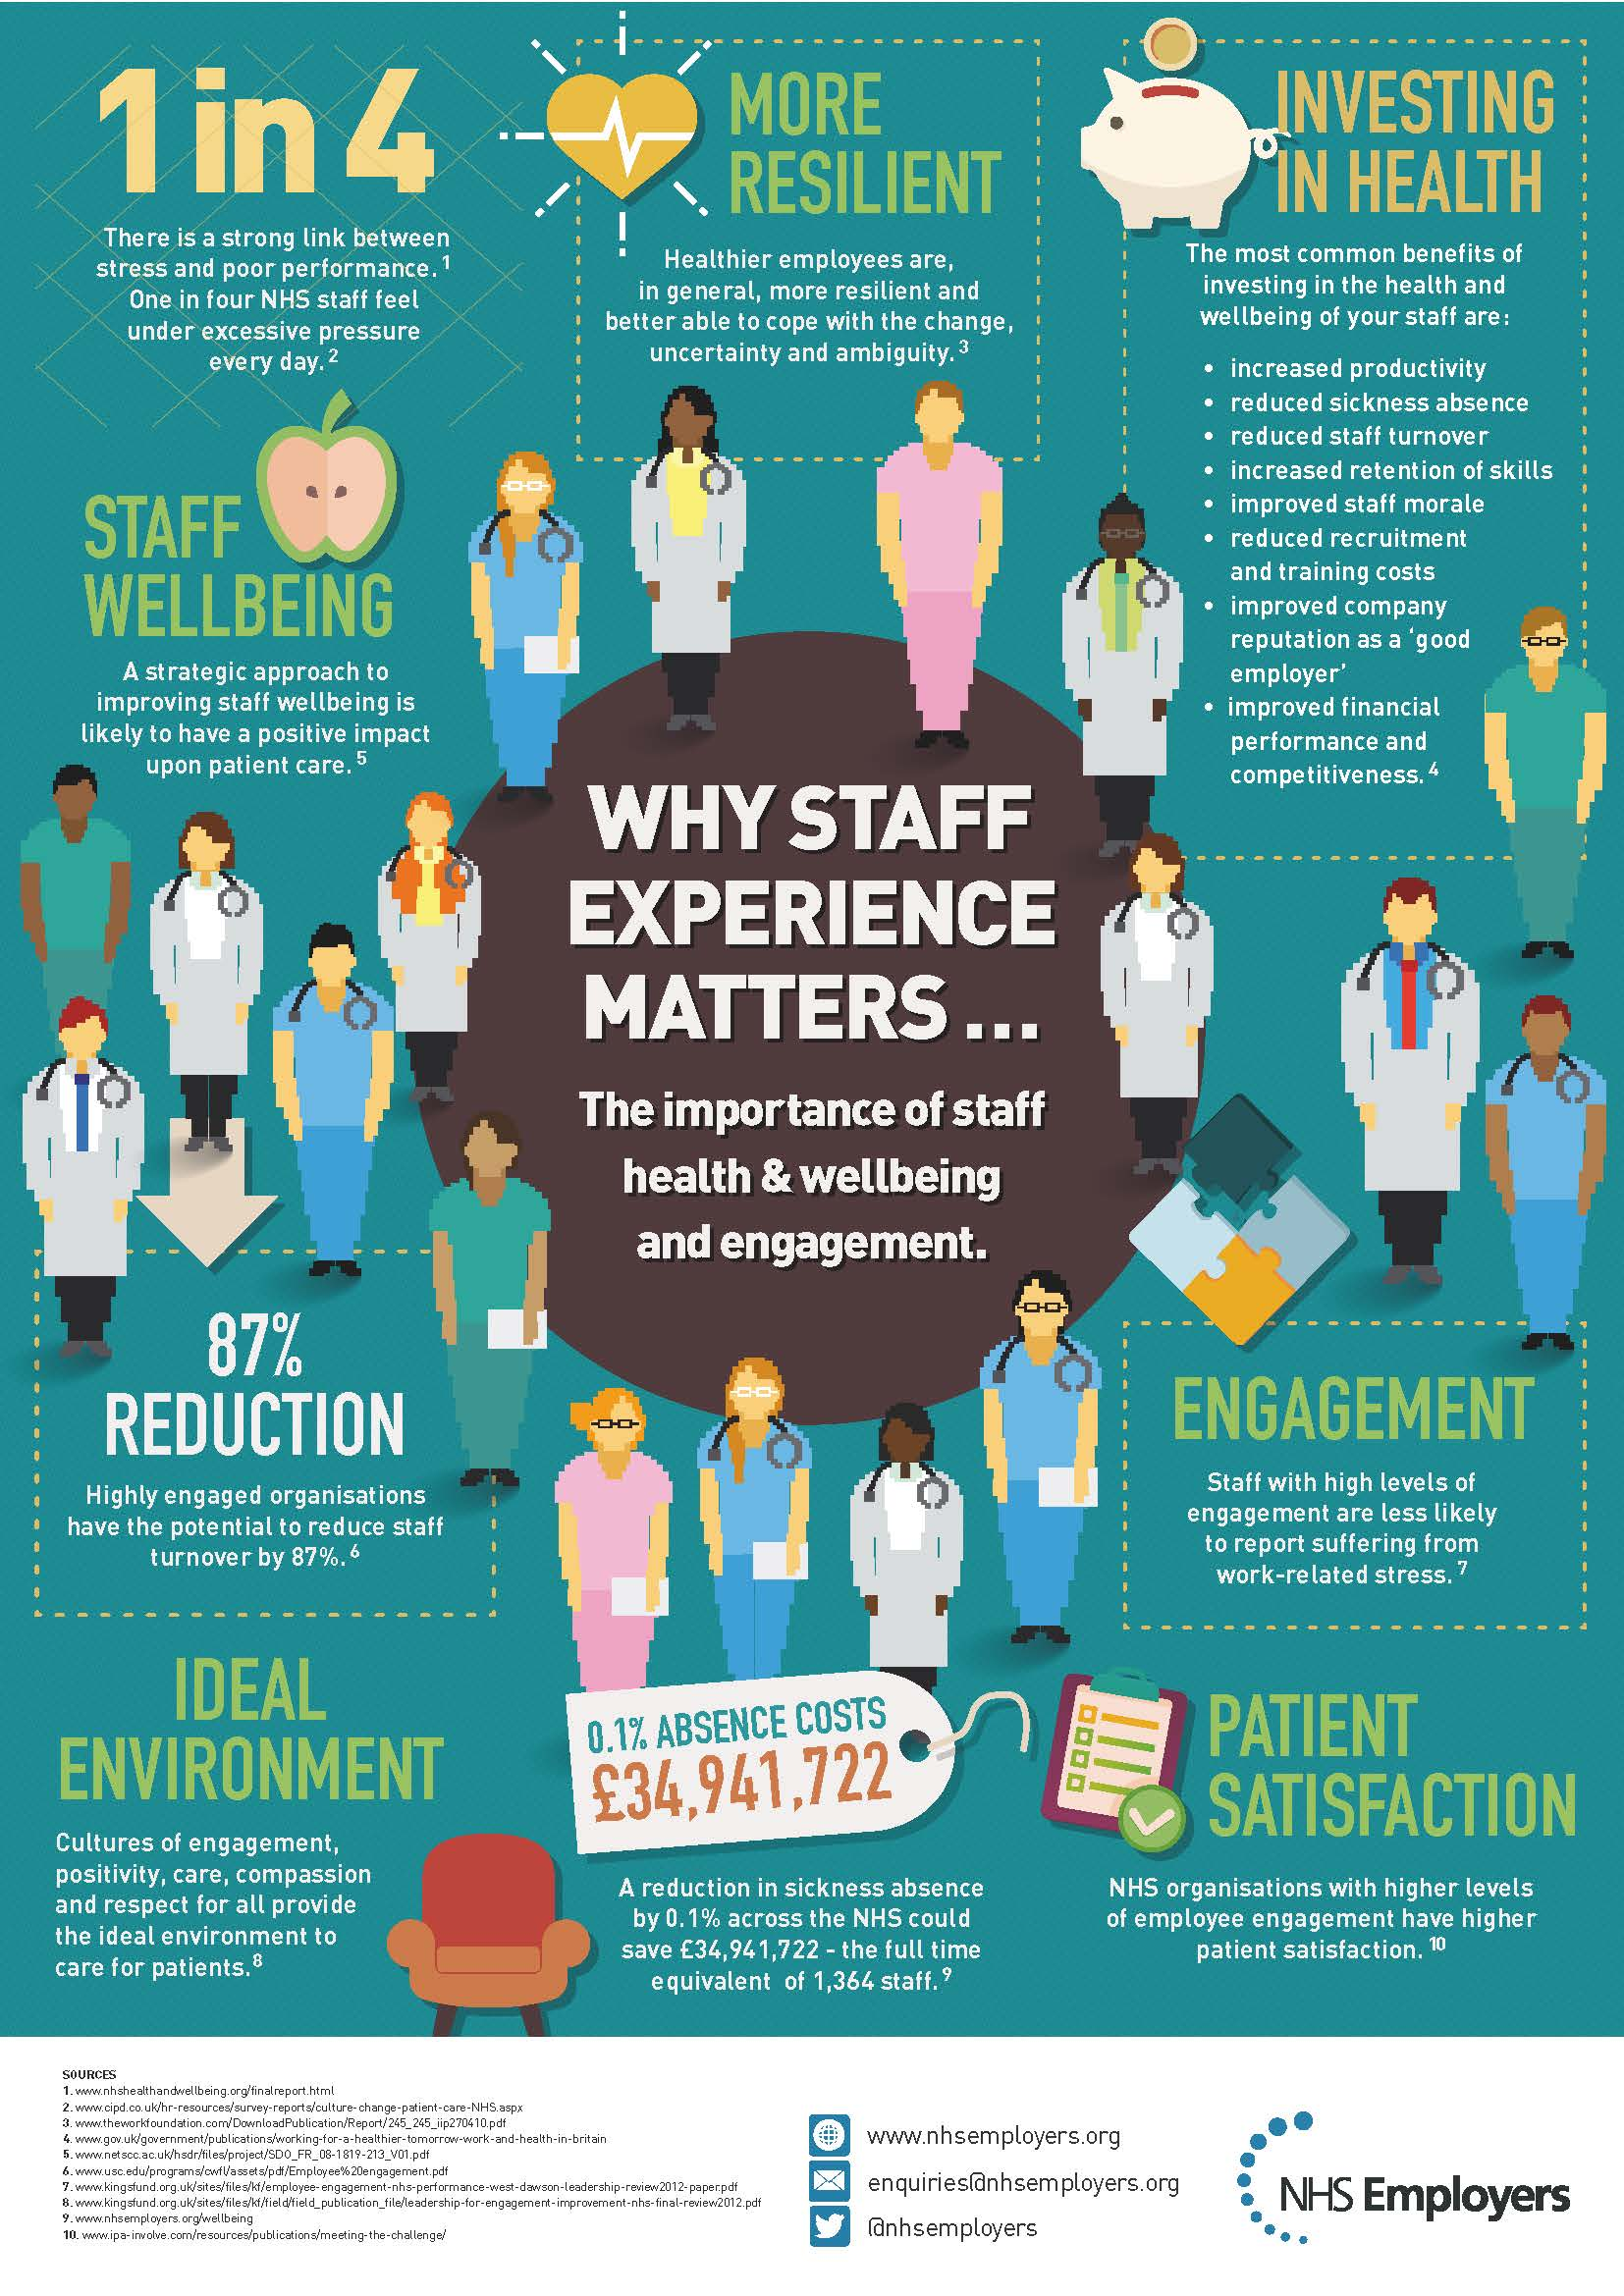 5. Why-staff-experience-matters-infographic_web.jpg